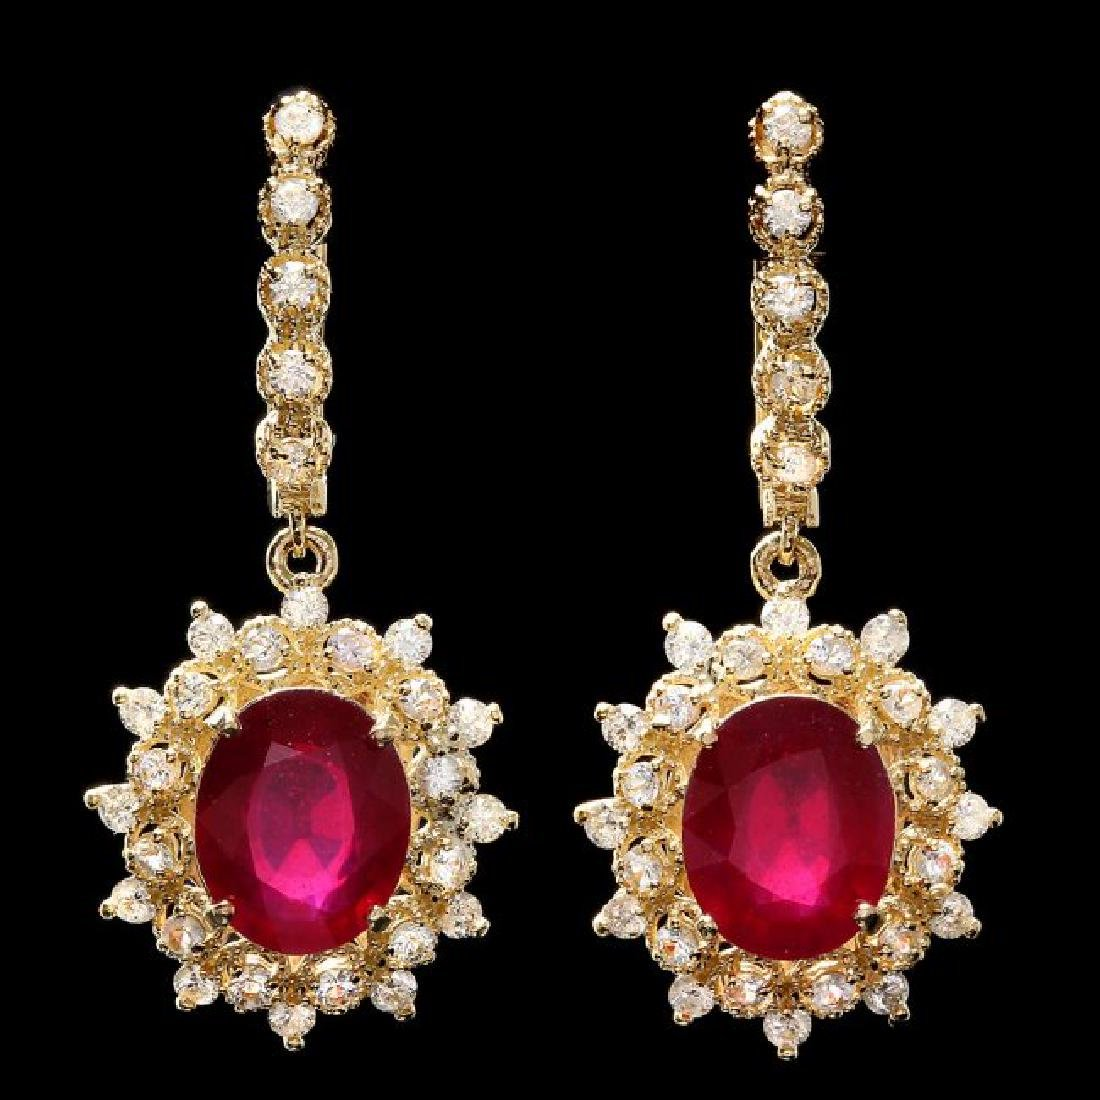 14k Gold 8.00ct Ruby 1.90ct Diamond Earrings